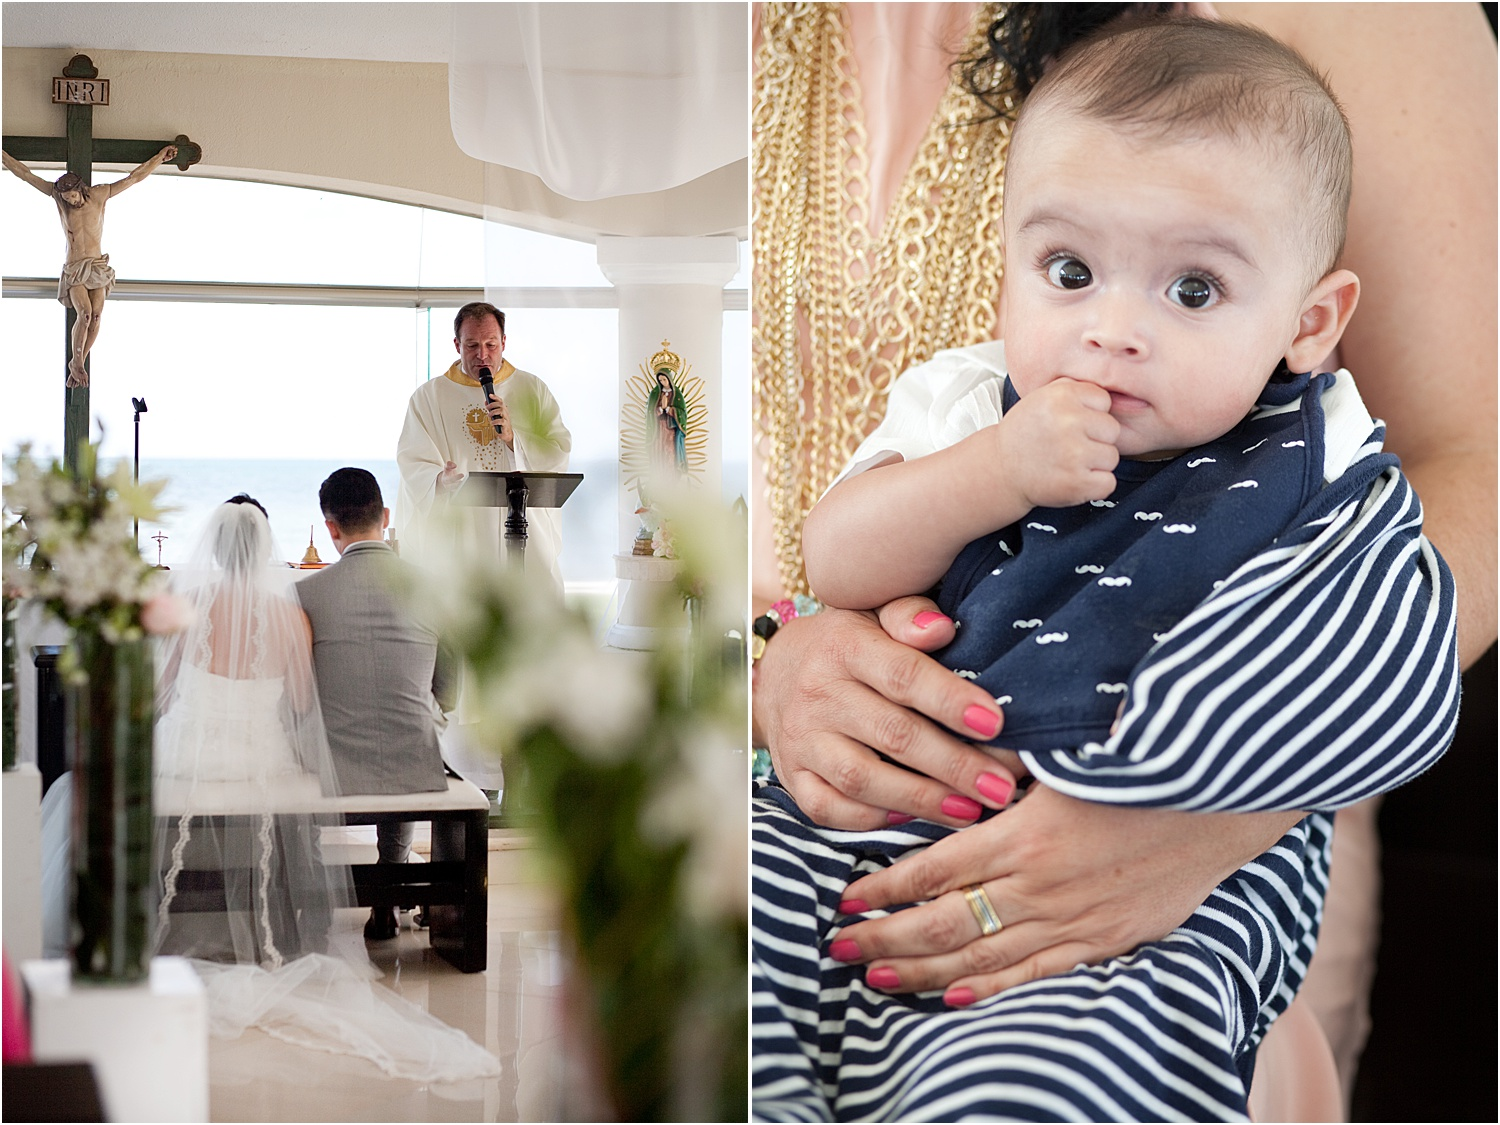 Image: A second shooter can get creative with angles, perspective, and photograph key guests at wedd...